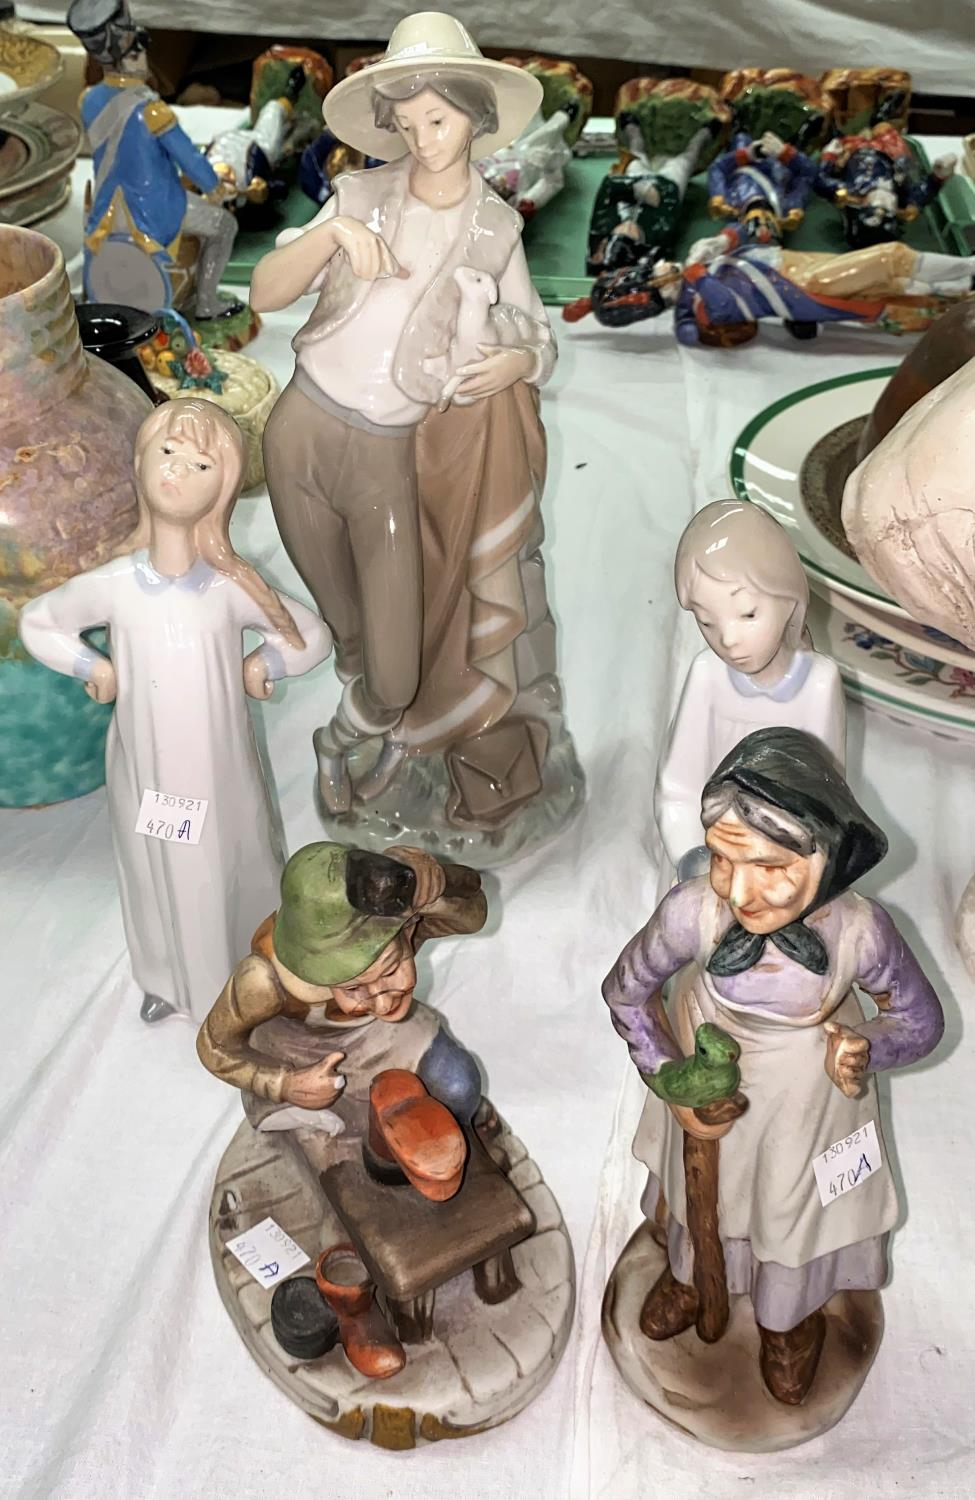 A Lladro figure of a Shepherd feeding a lamb & two other Lladro figures etc.